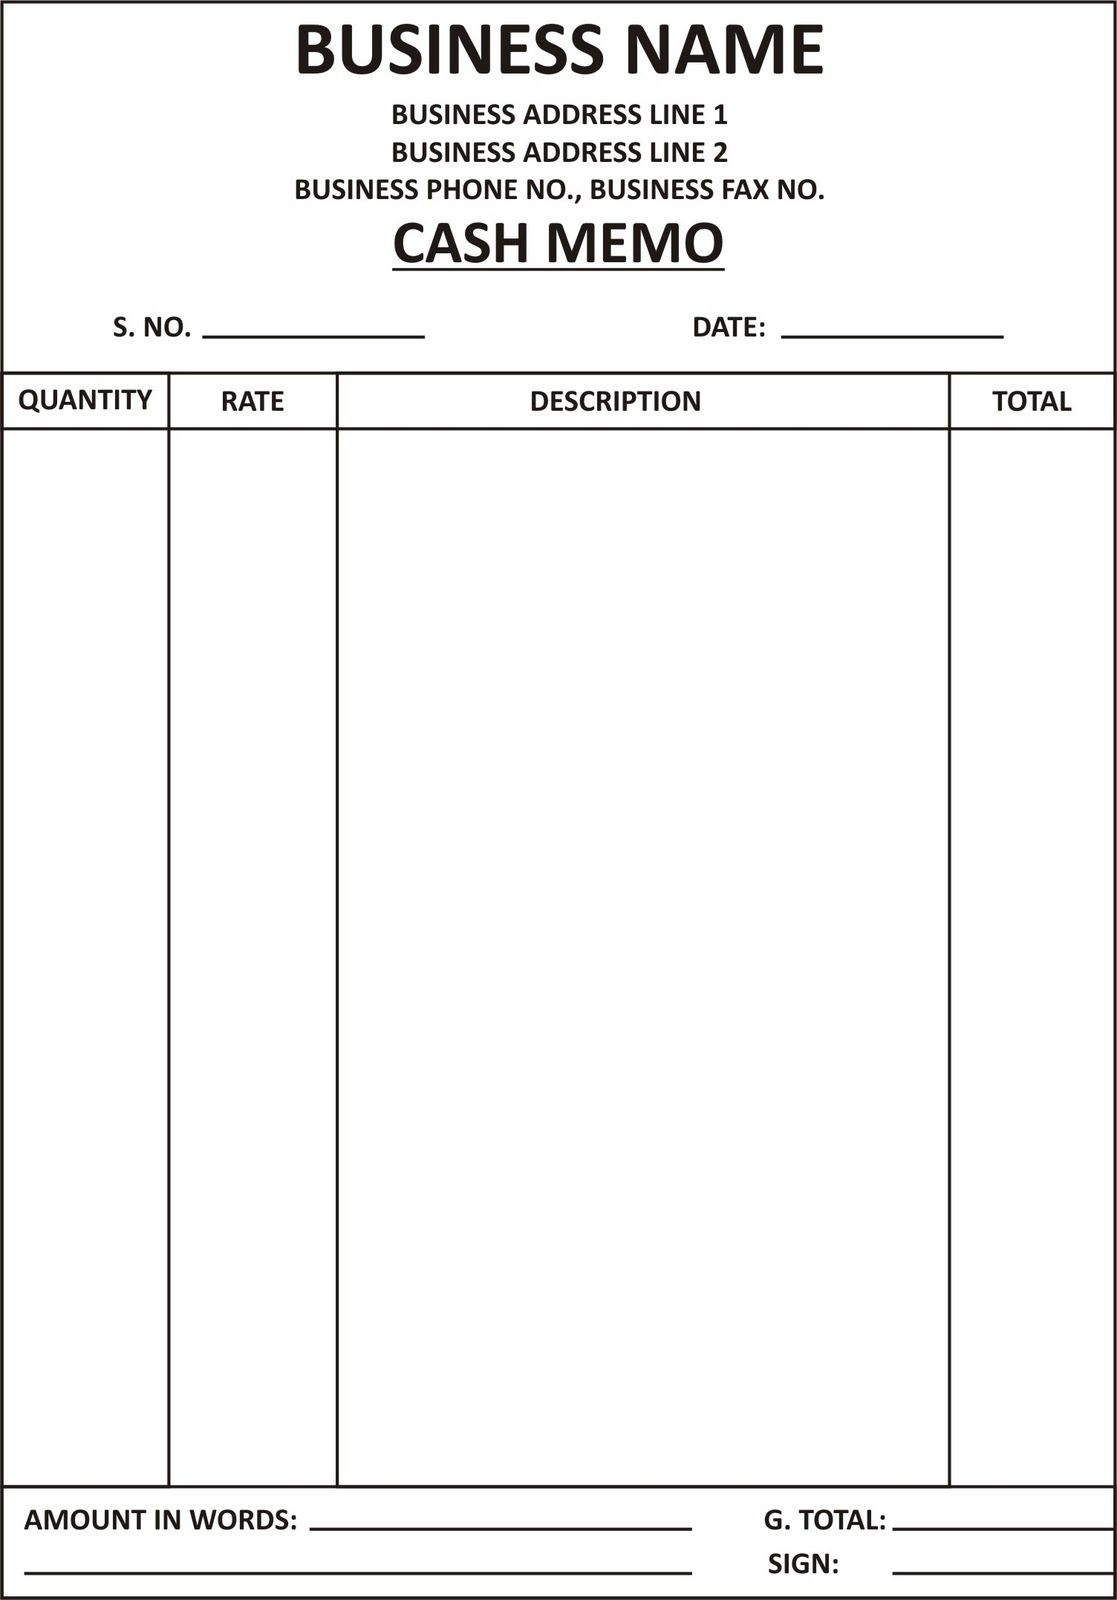 cash bill format submited images pic 2 fly invoice format mobile service bill format